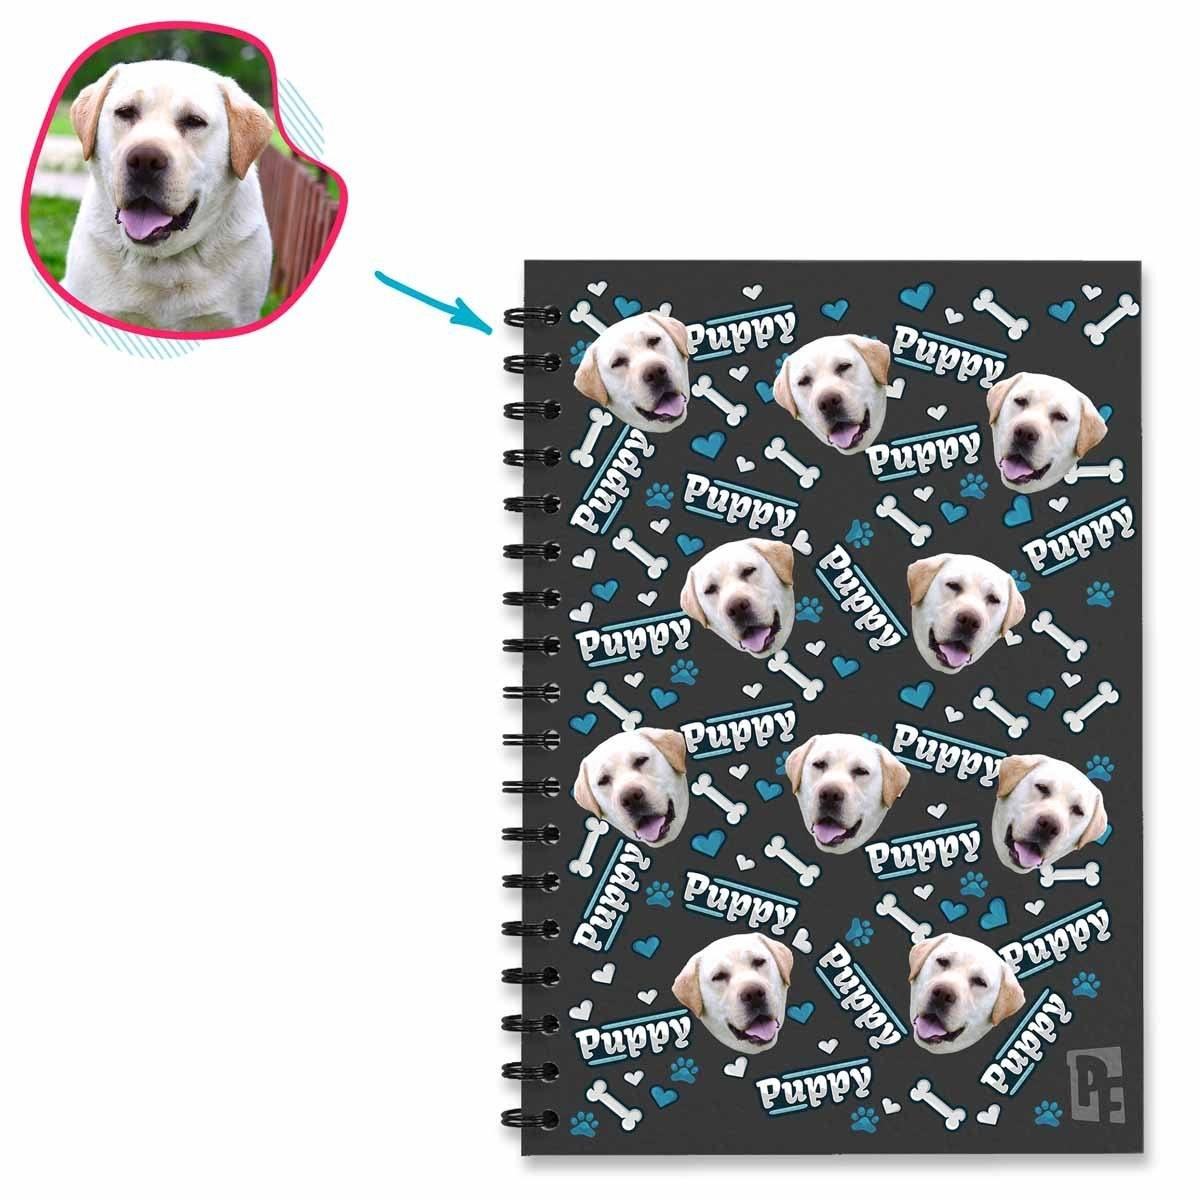 dark Puppy Notebook personalized with photo of face printed on them